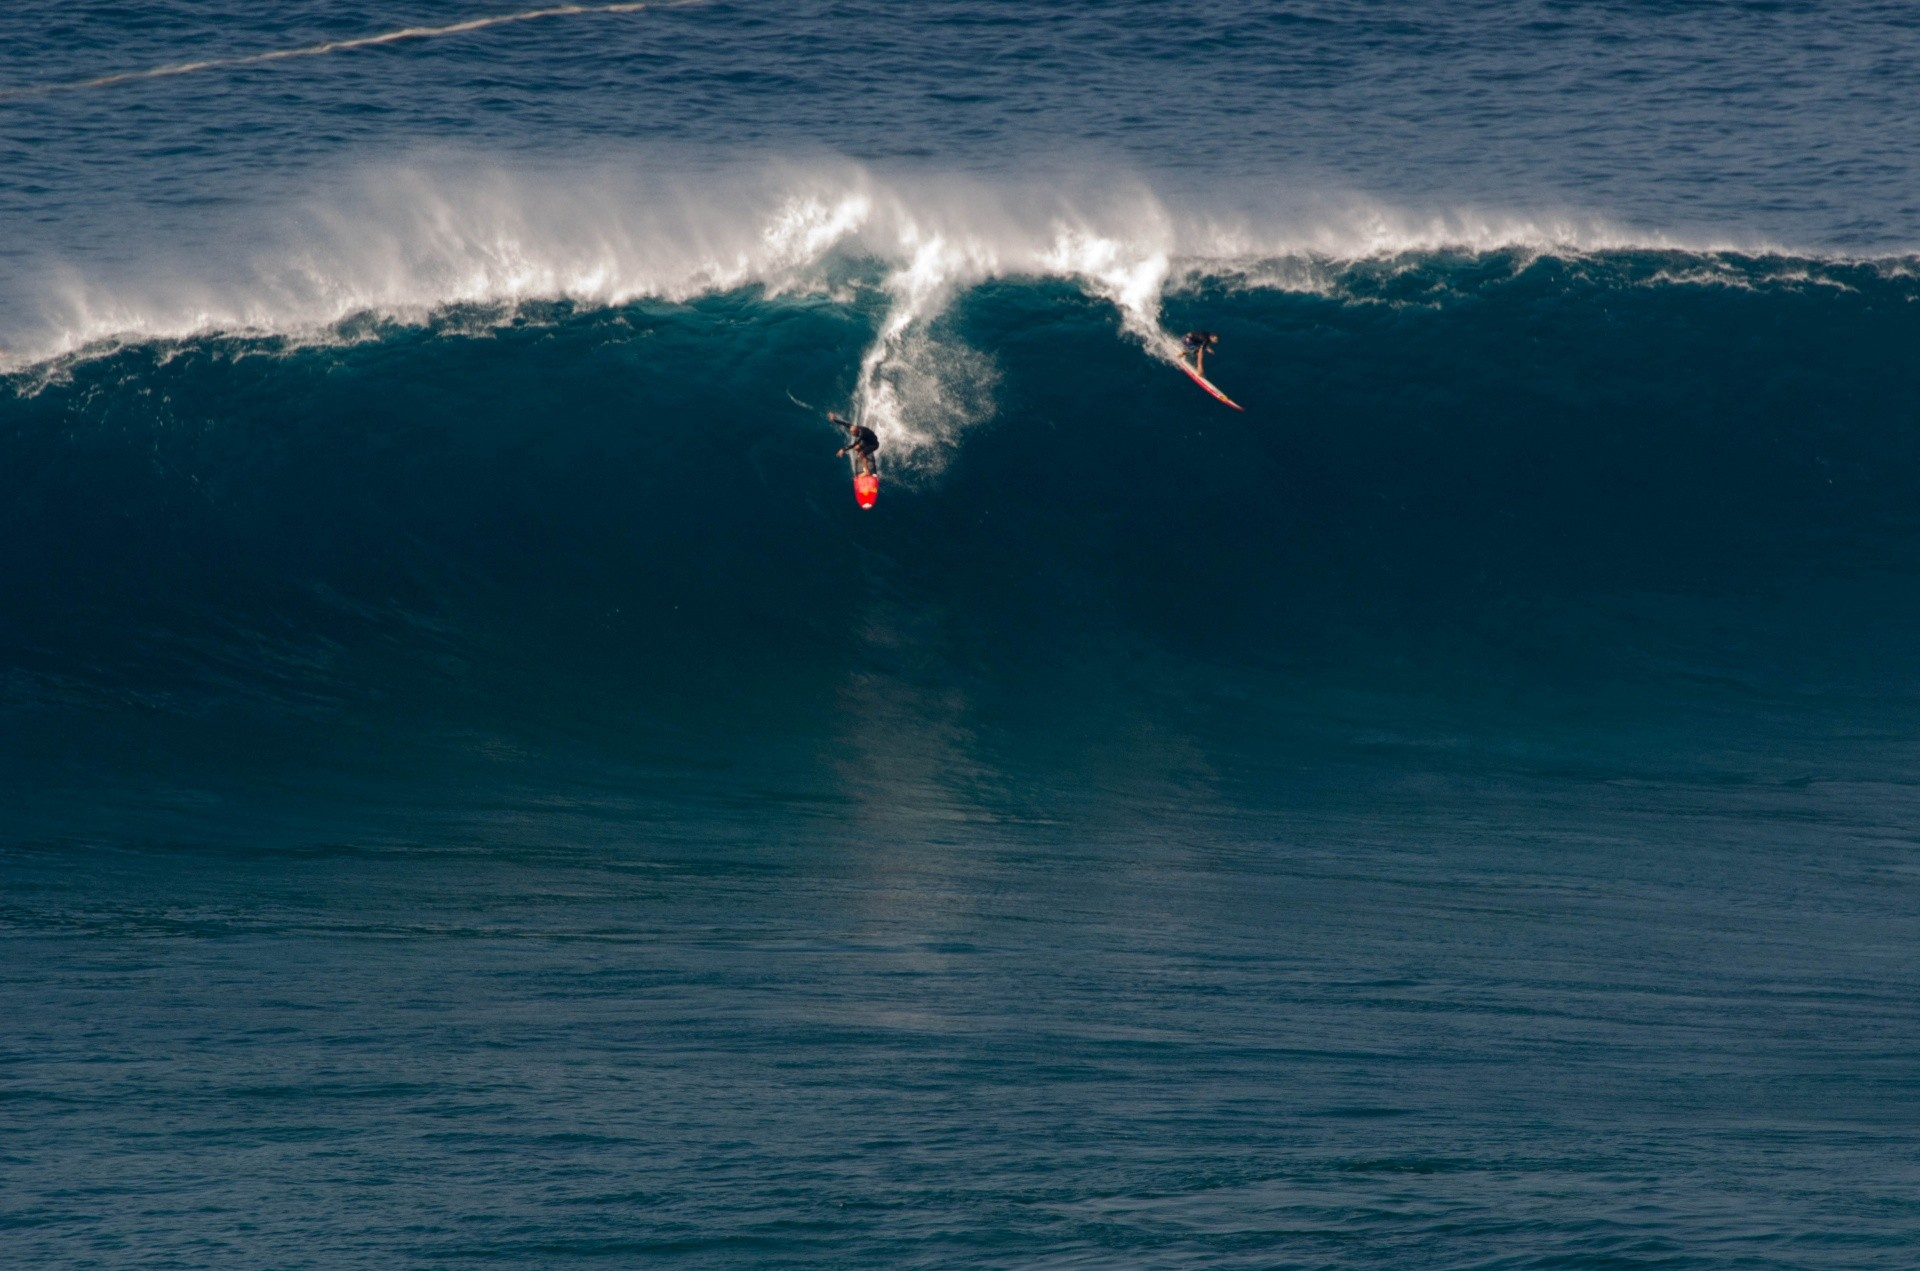 Werner Maas's photo of Peahi - Jaws